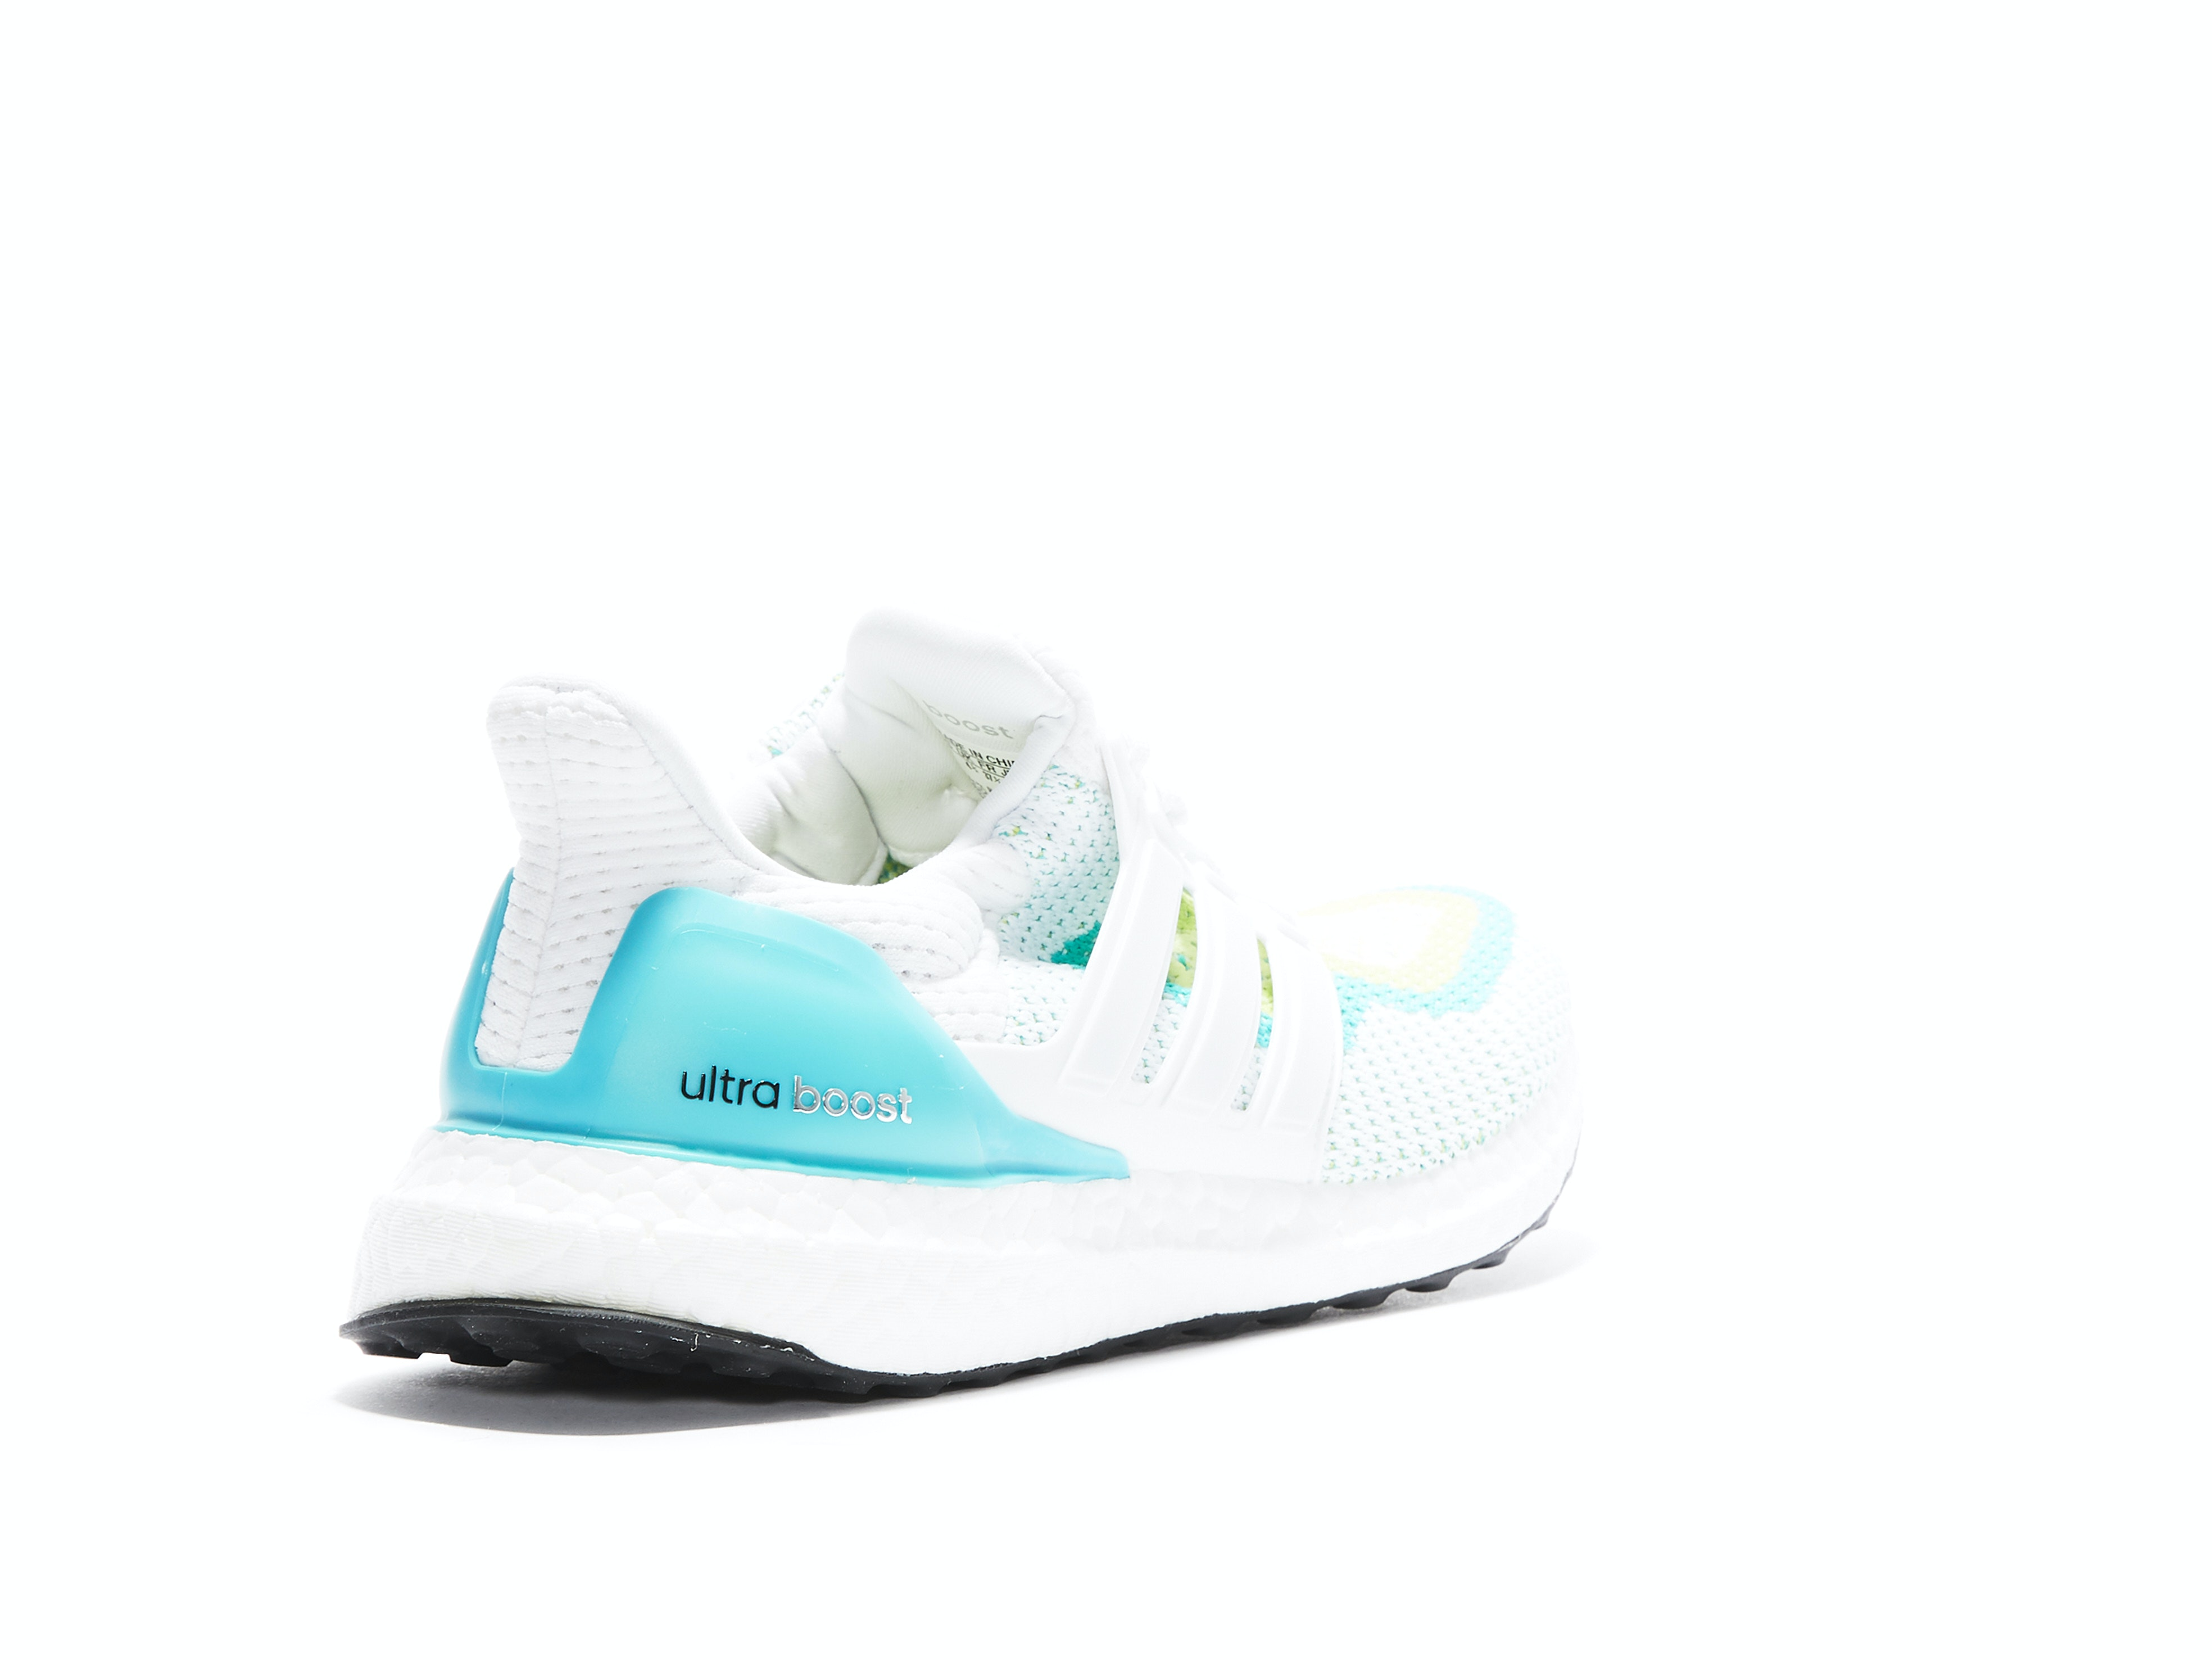 7920fb9b4691f Semi Solar Slime UltraBoost 2.0. 100% AuthenticSold out! Adidas   AF5144